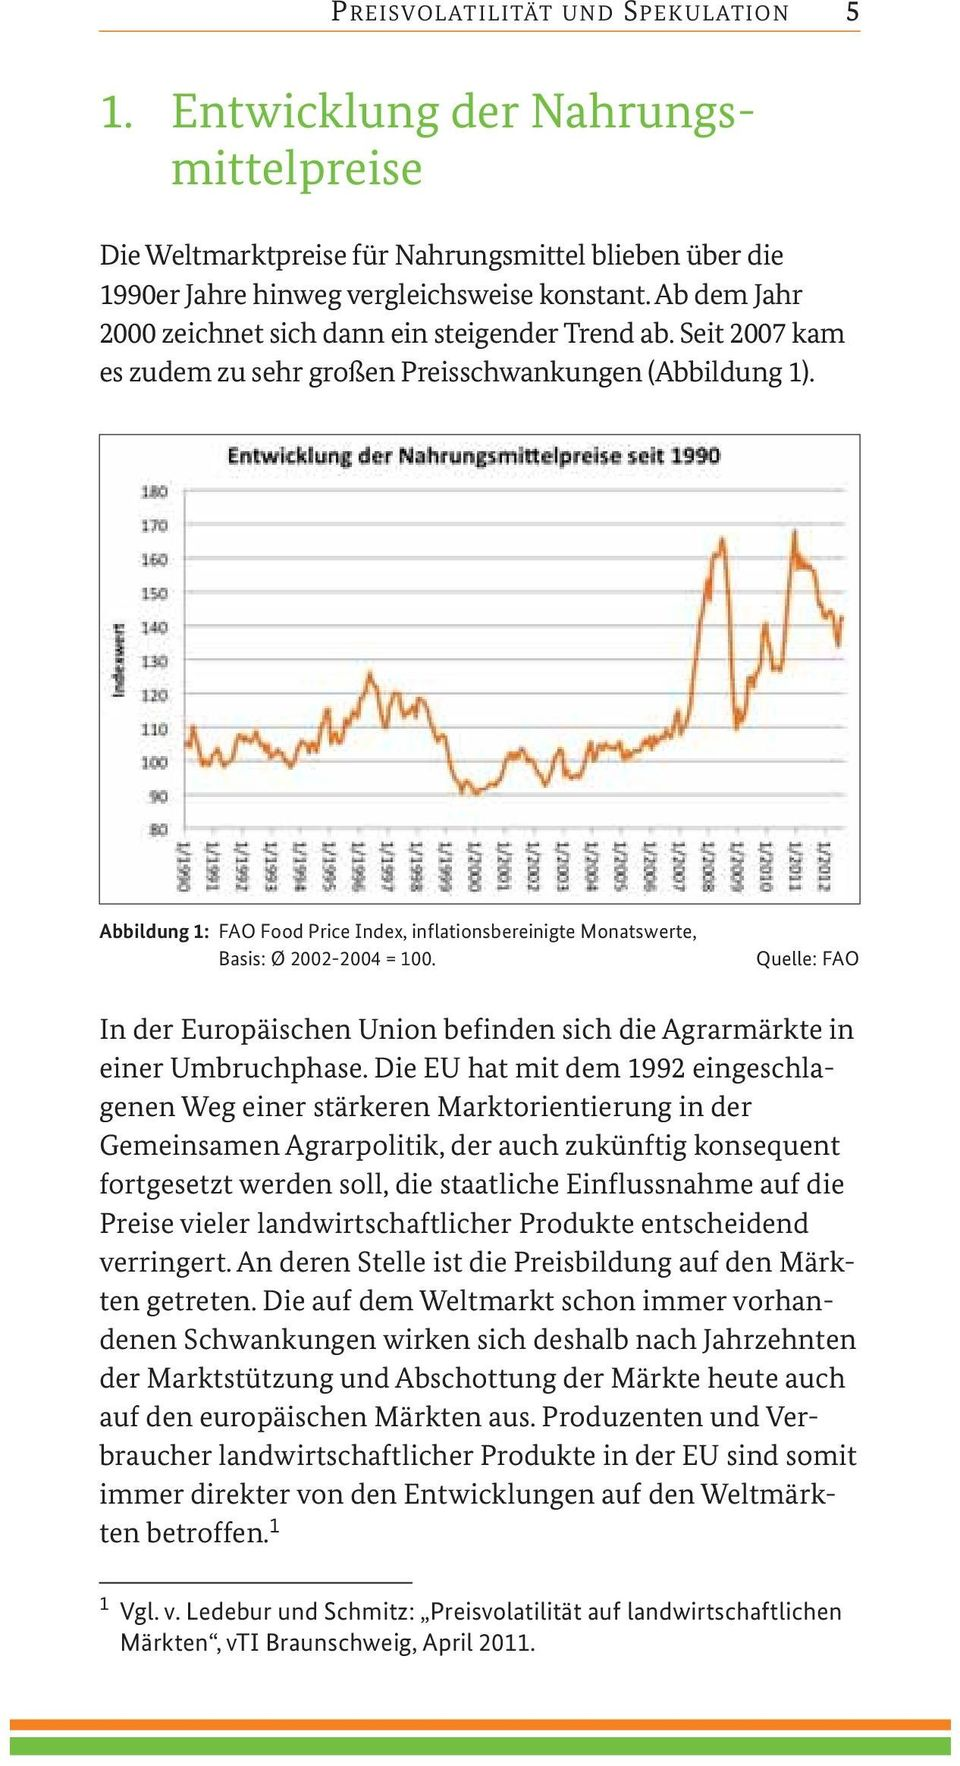 Abbildung 1: FAO Food Price Index, inflationsbereinigte Monatswerte, Basis: Ø 2002-2004 = 100. Quelle: FAO In der Europäischen Union befinden sich die Agrarmärkte in einer Umbruchphase.